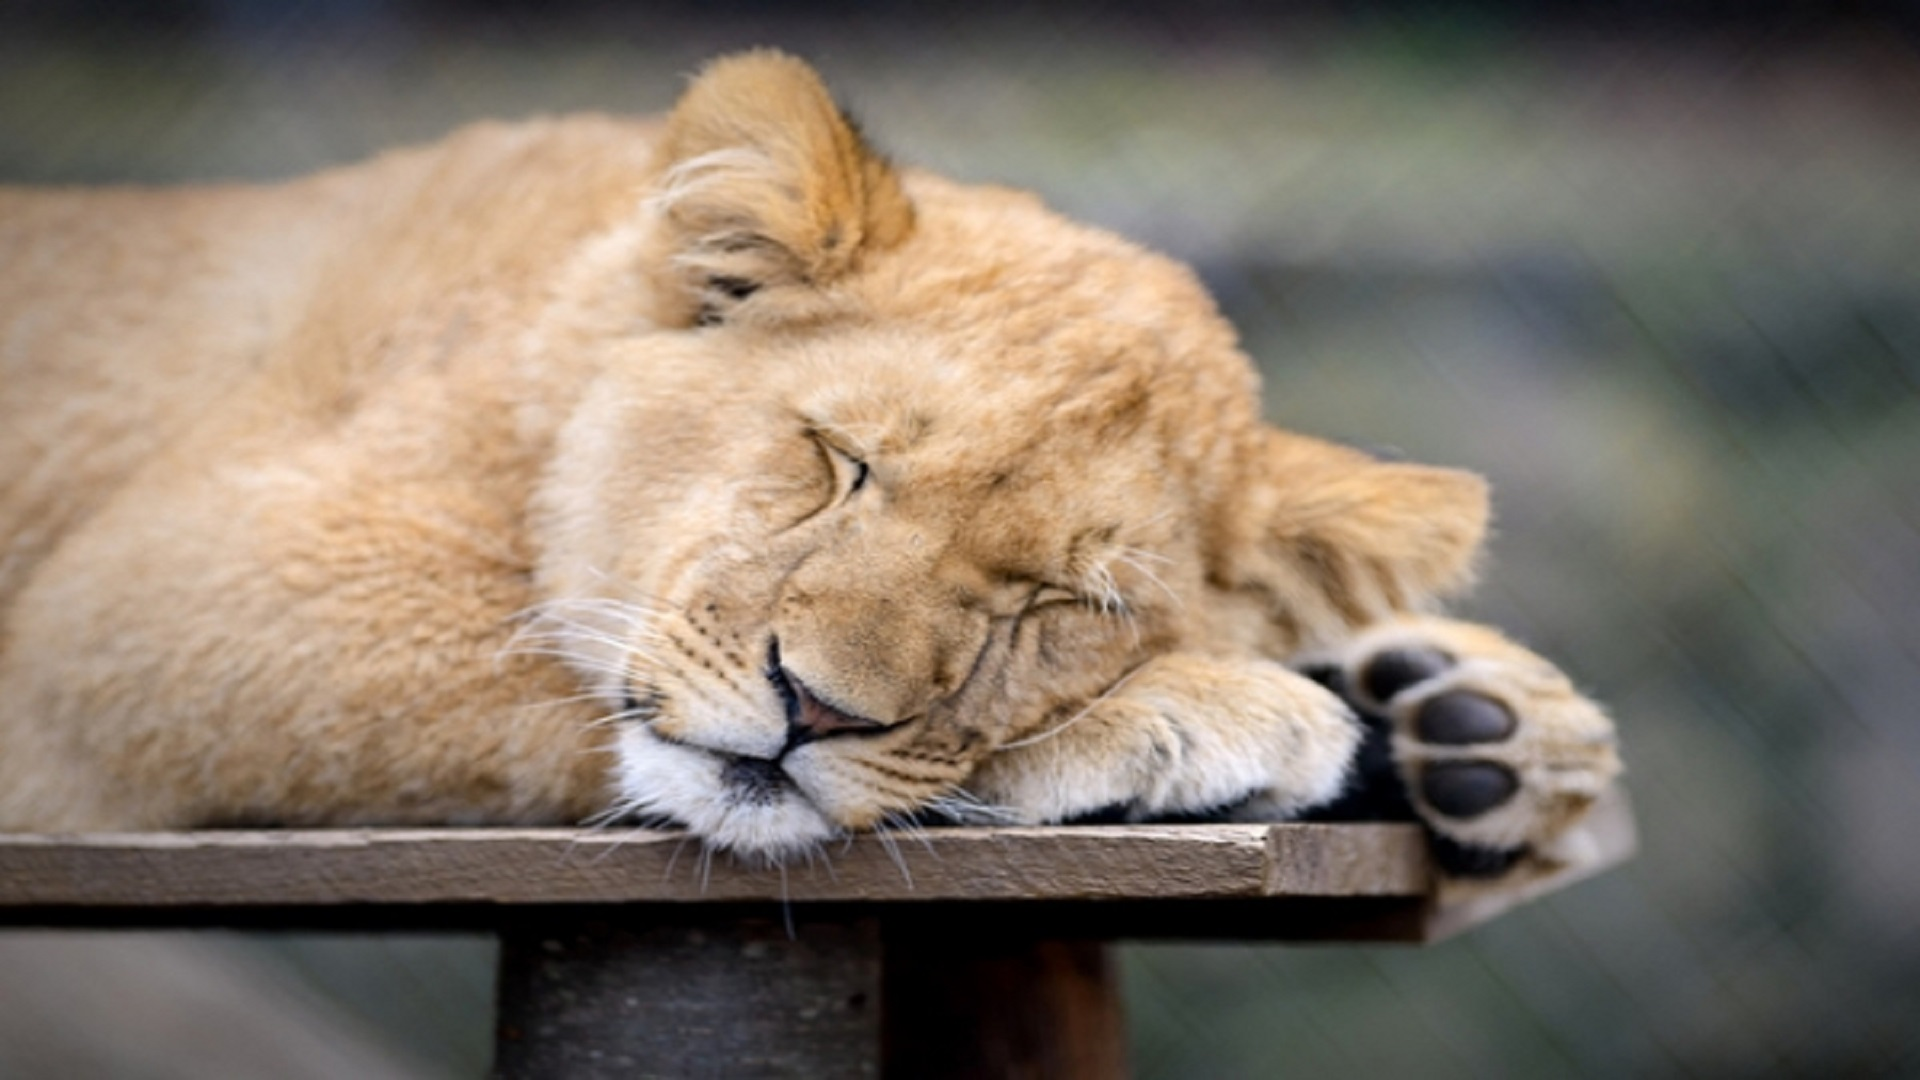 3d Birthday Wallpaper Sleeping Lion Africa Hd Free Wallpapers Hd Wallpaper